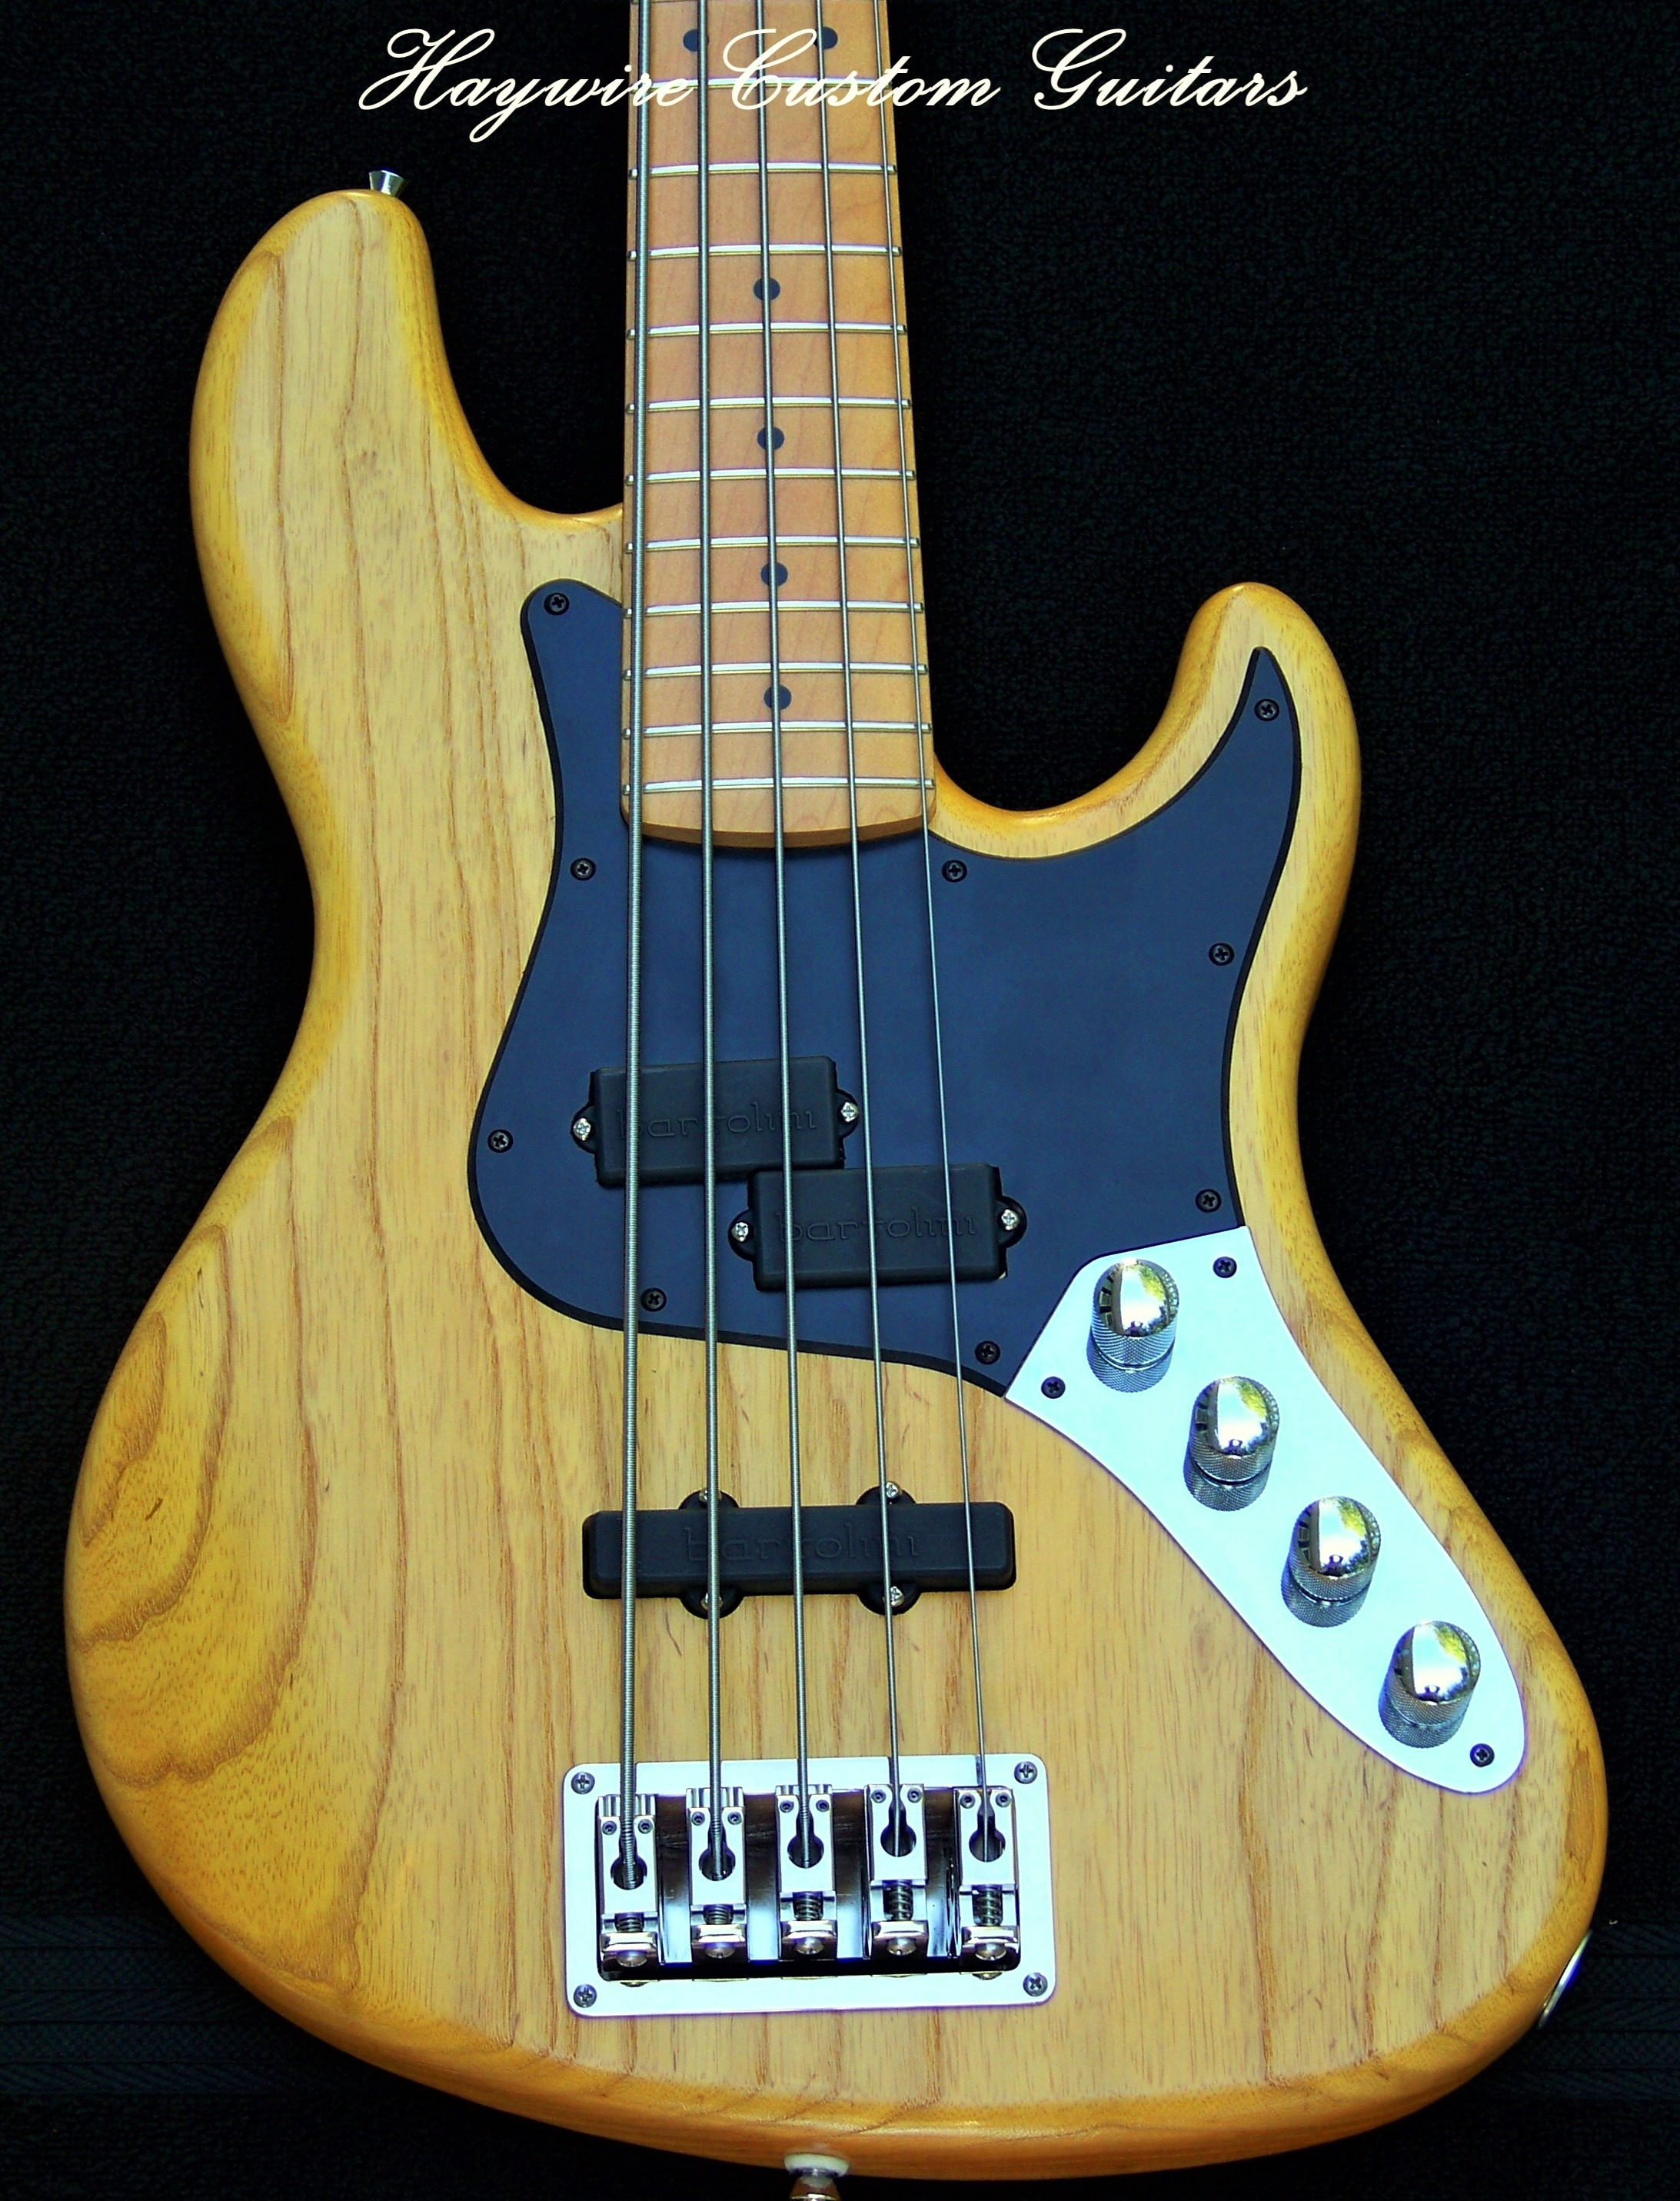 image Haywire Custom Guitars - 5 String H Bass